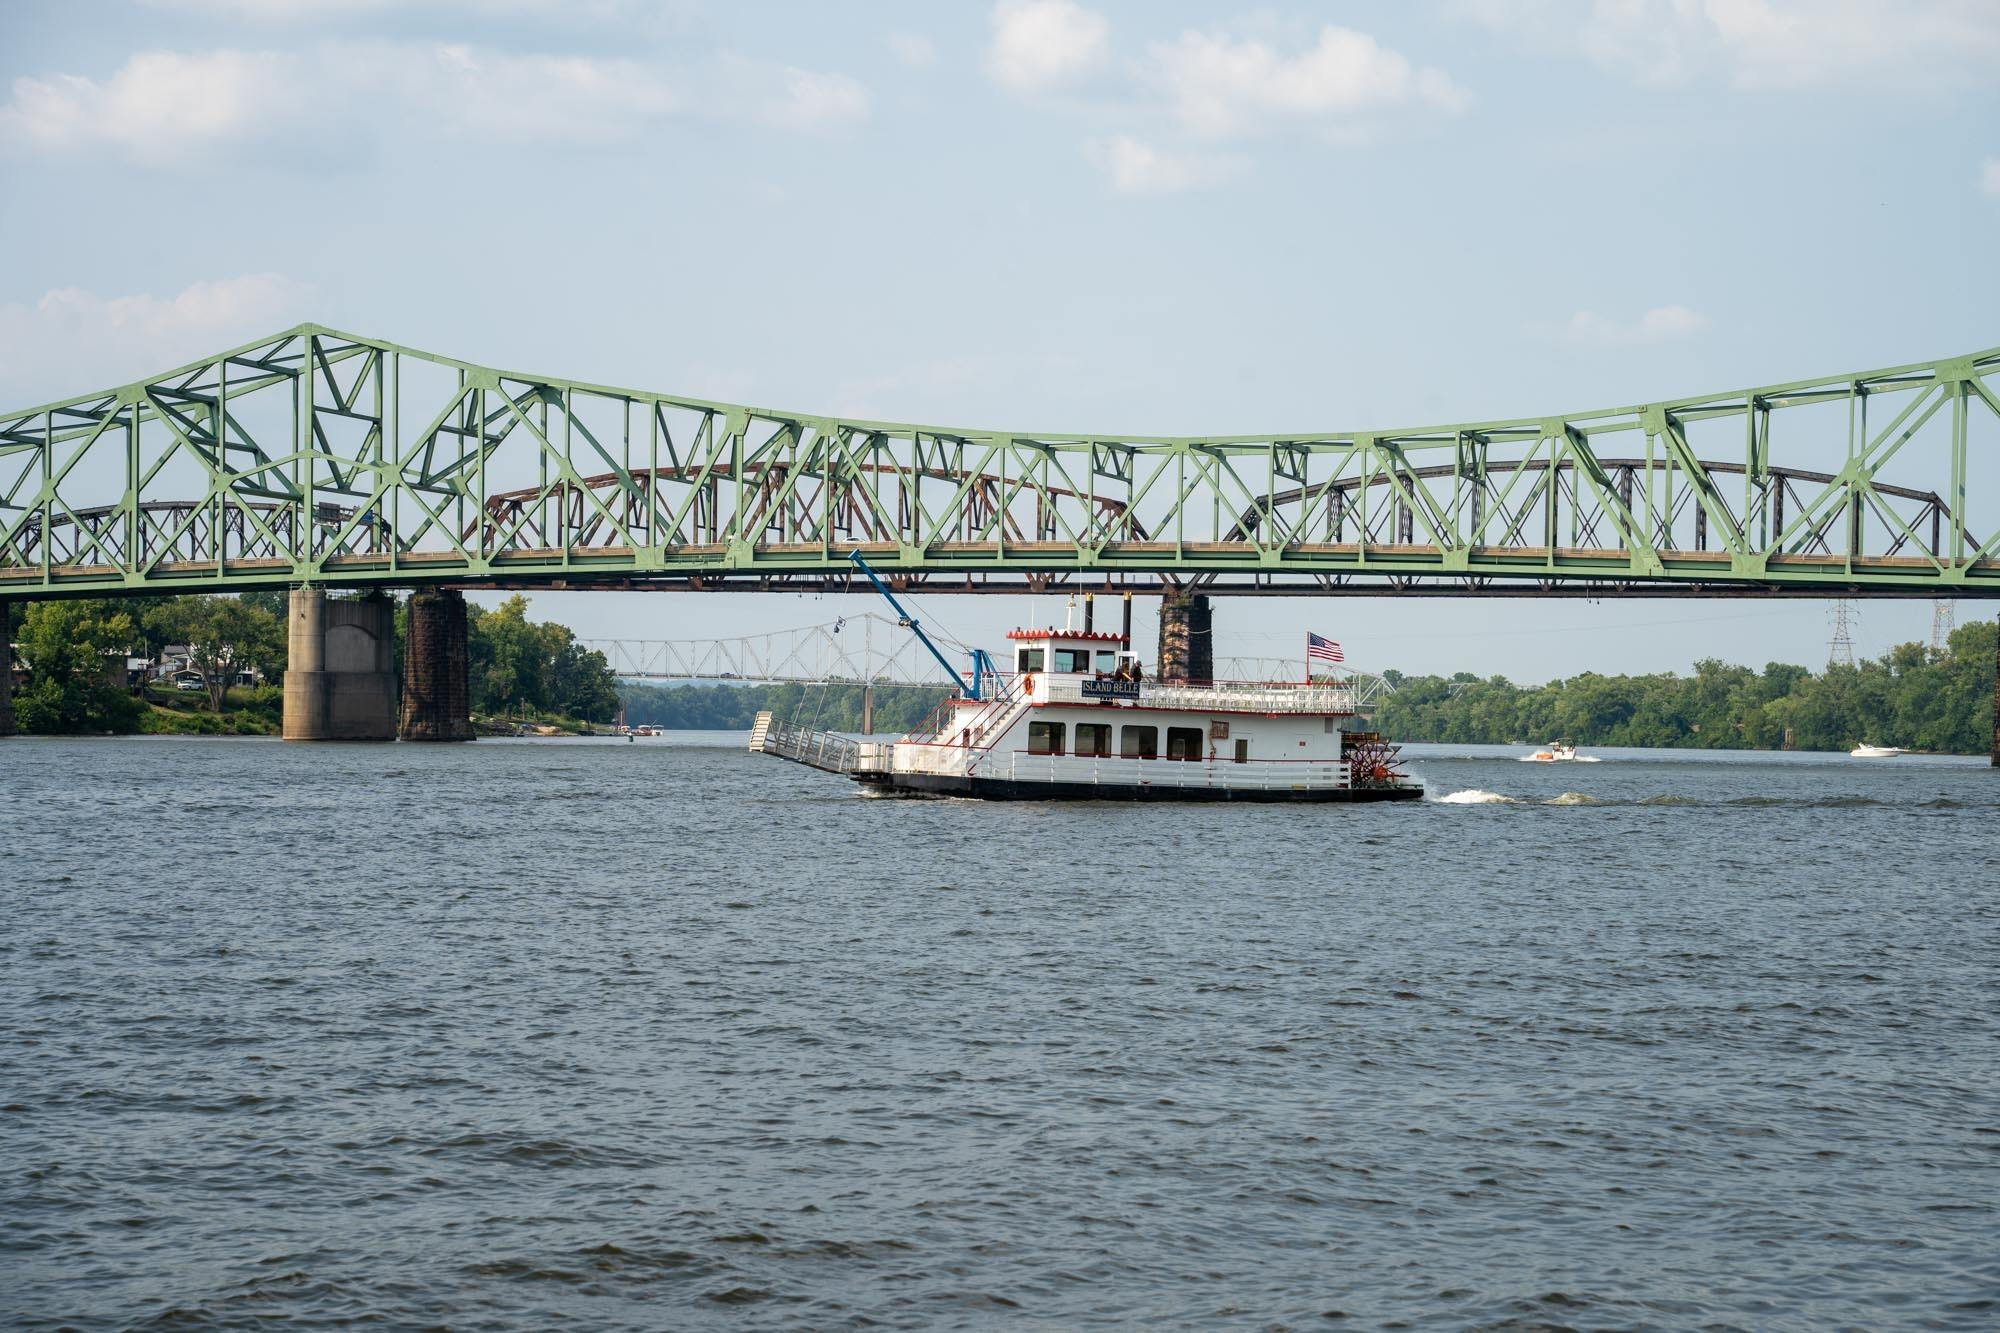 Boat on Ohio River in Parkersburg